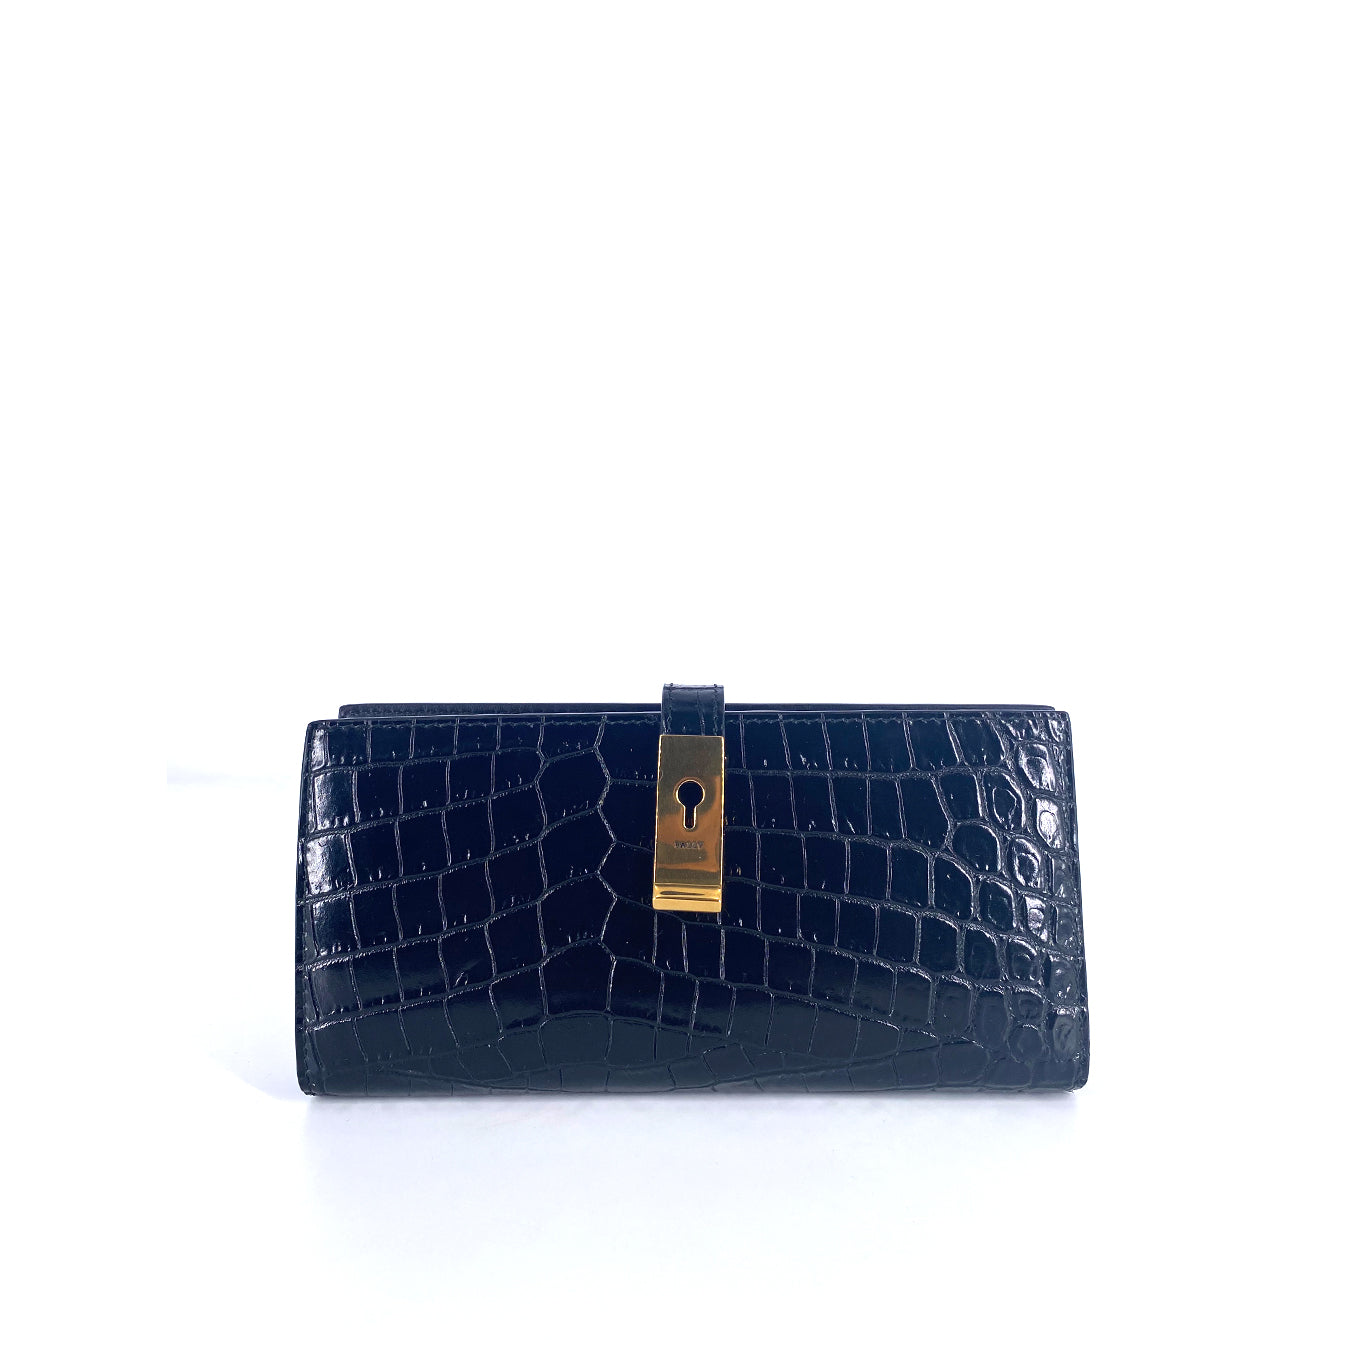 Bally Amy Black Long Wallet Croco Leather